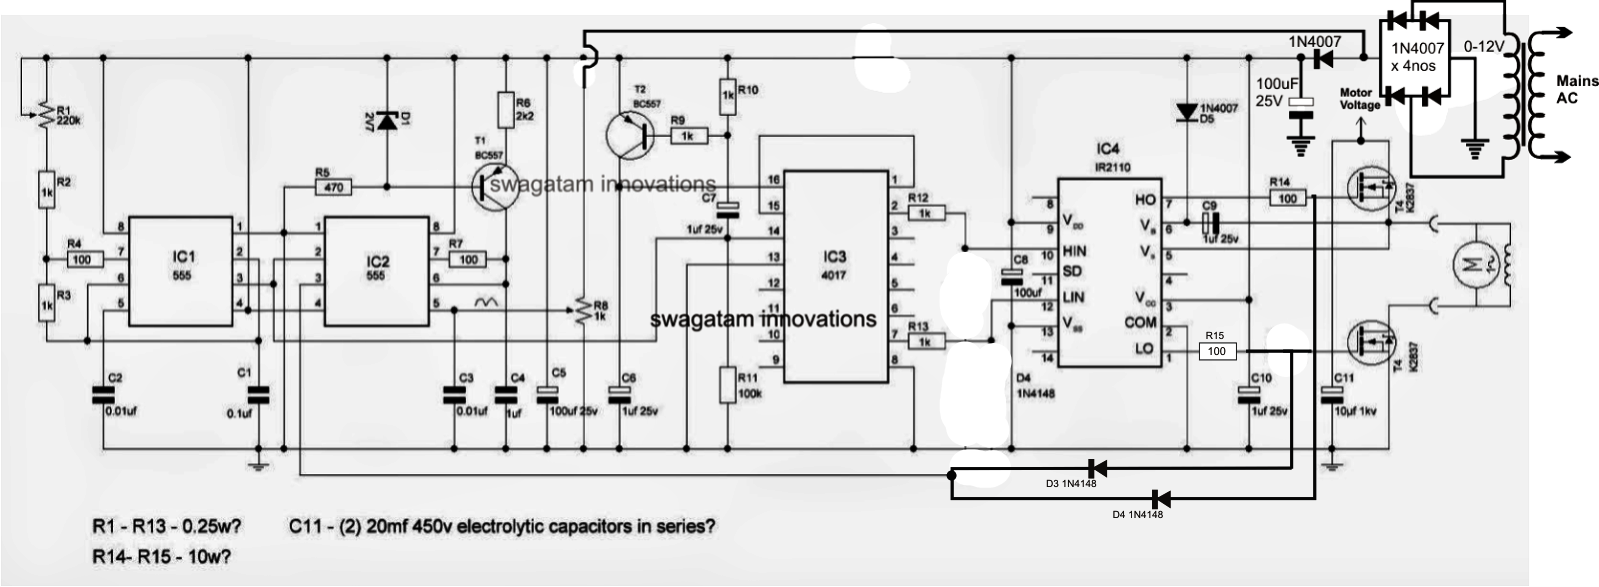 The post explains a simple variable frequency drive or VFD circuit ...